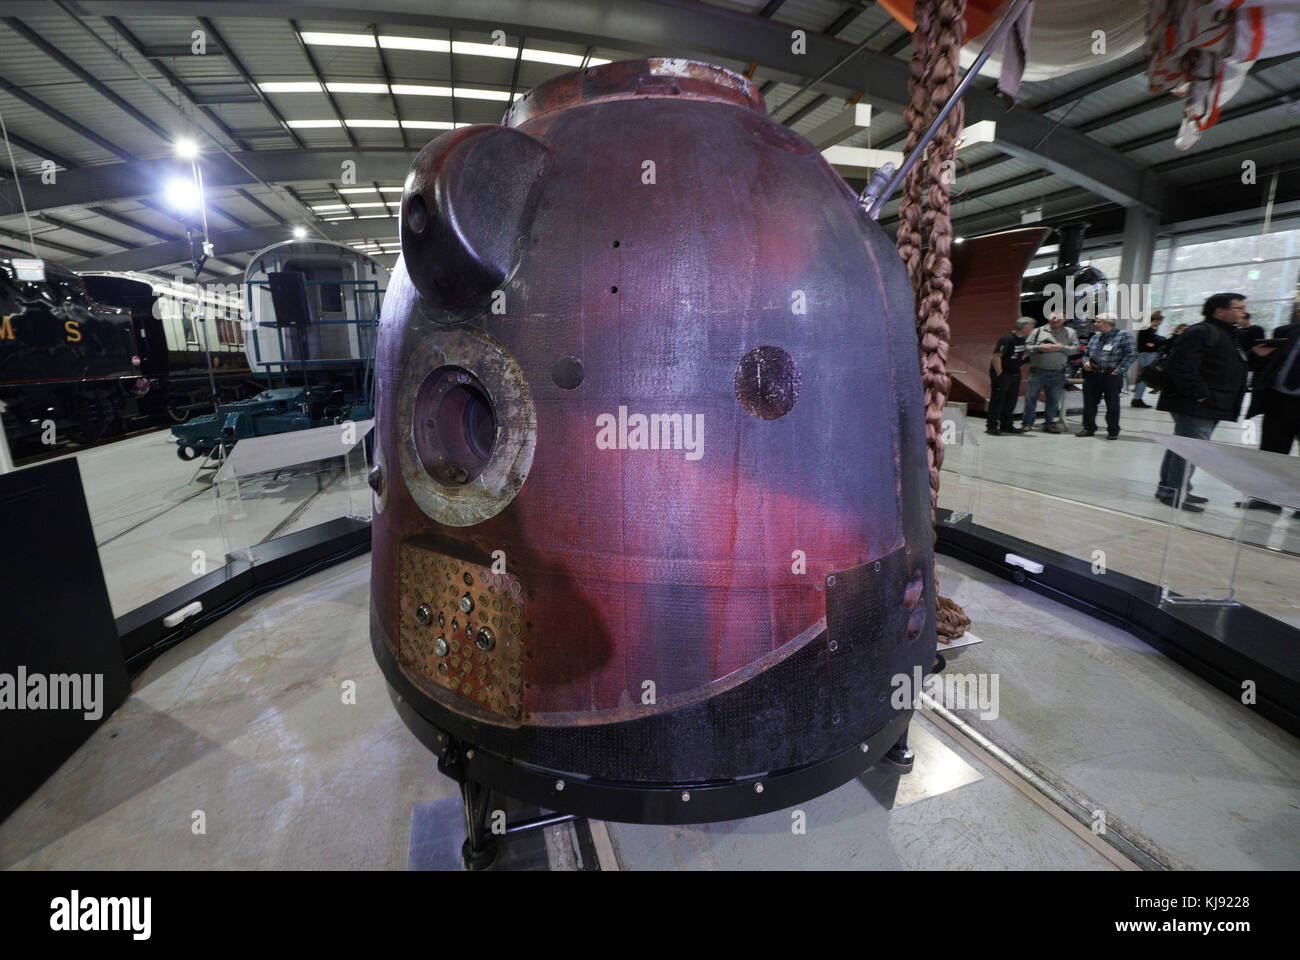 The Soyuz TMA-19M spacecraft which astronaut Tim Peake travelled back to earth from the International Space Station - Stock Image